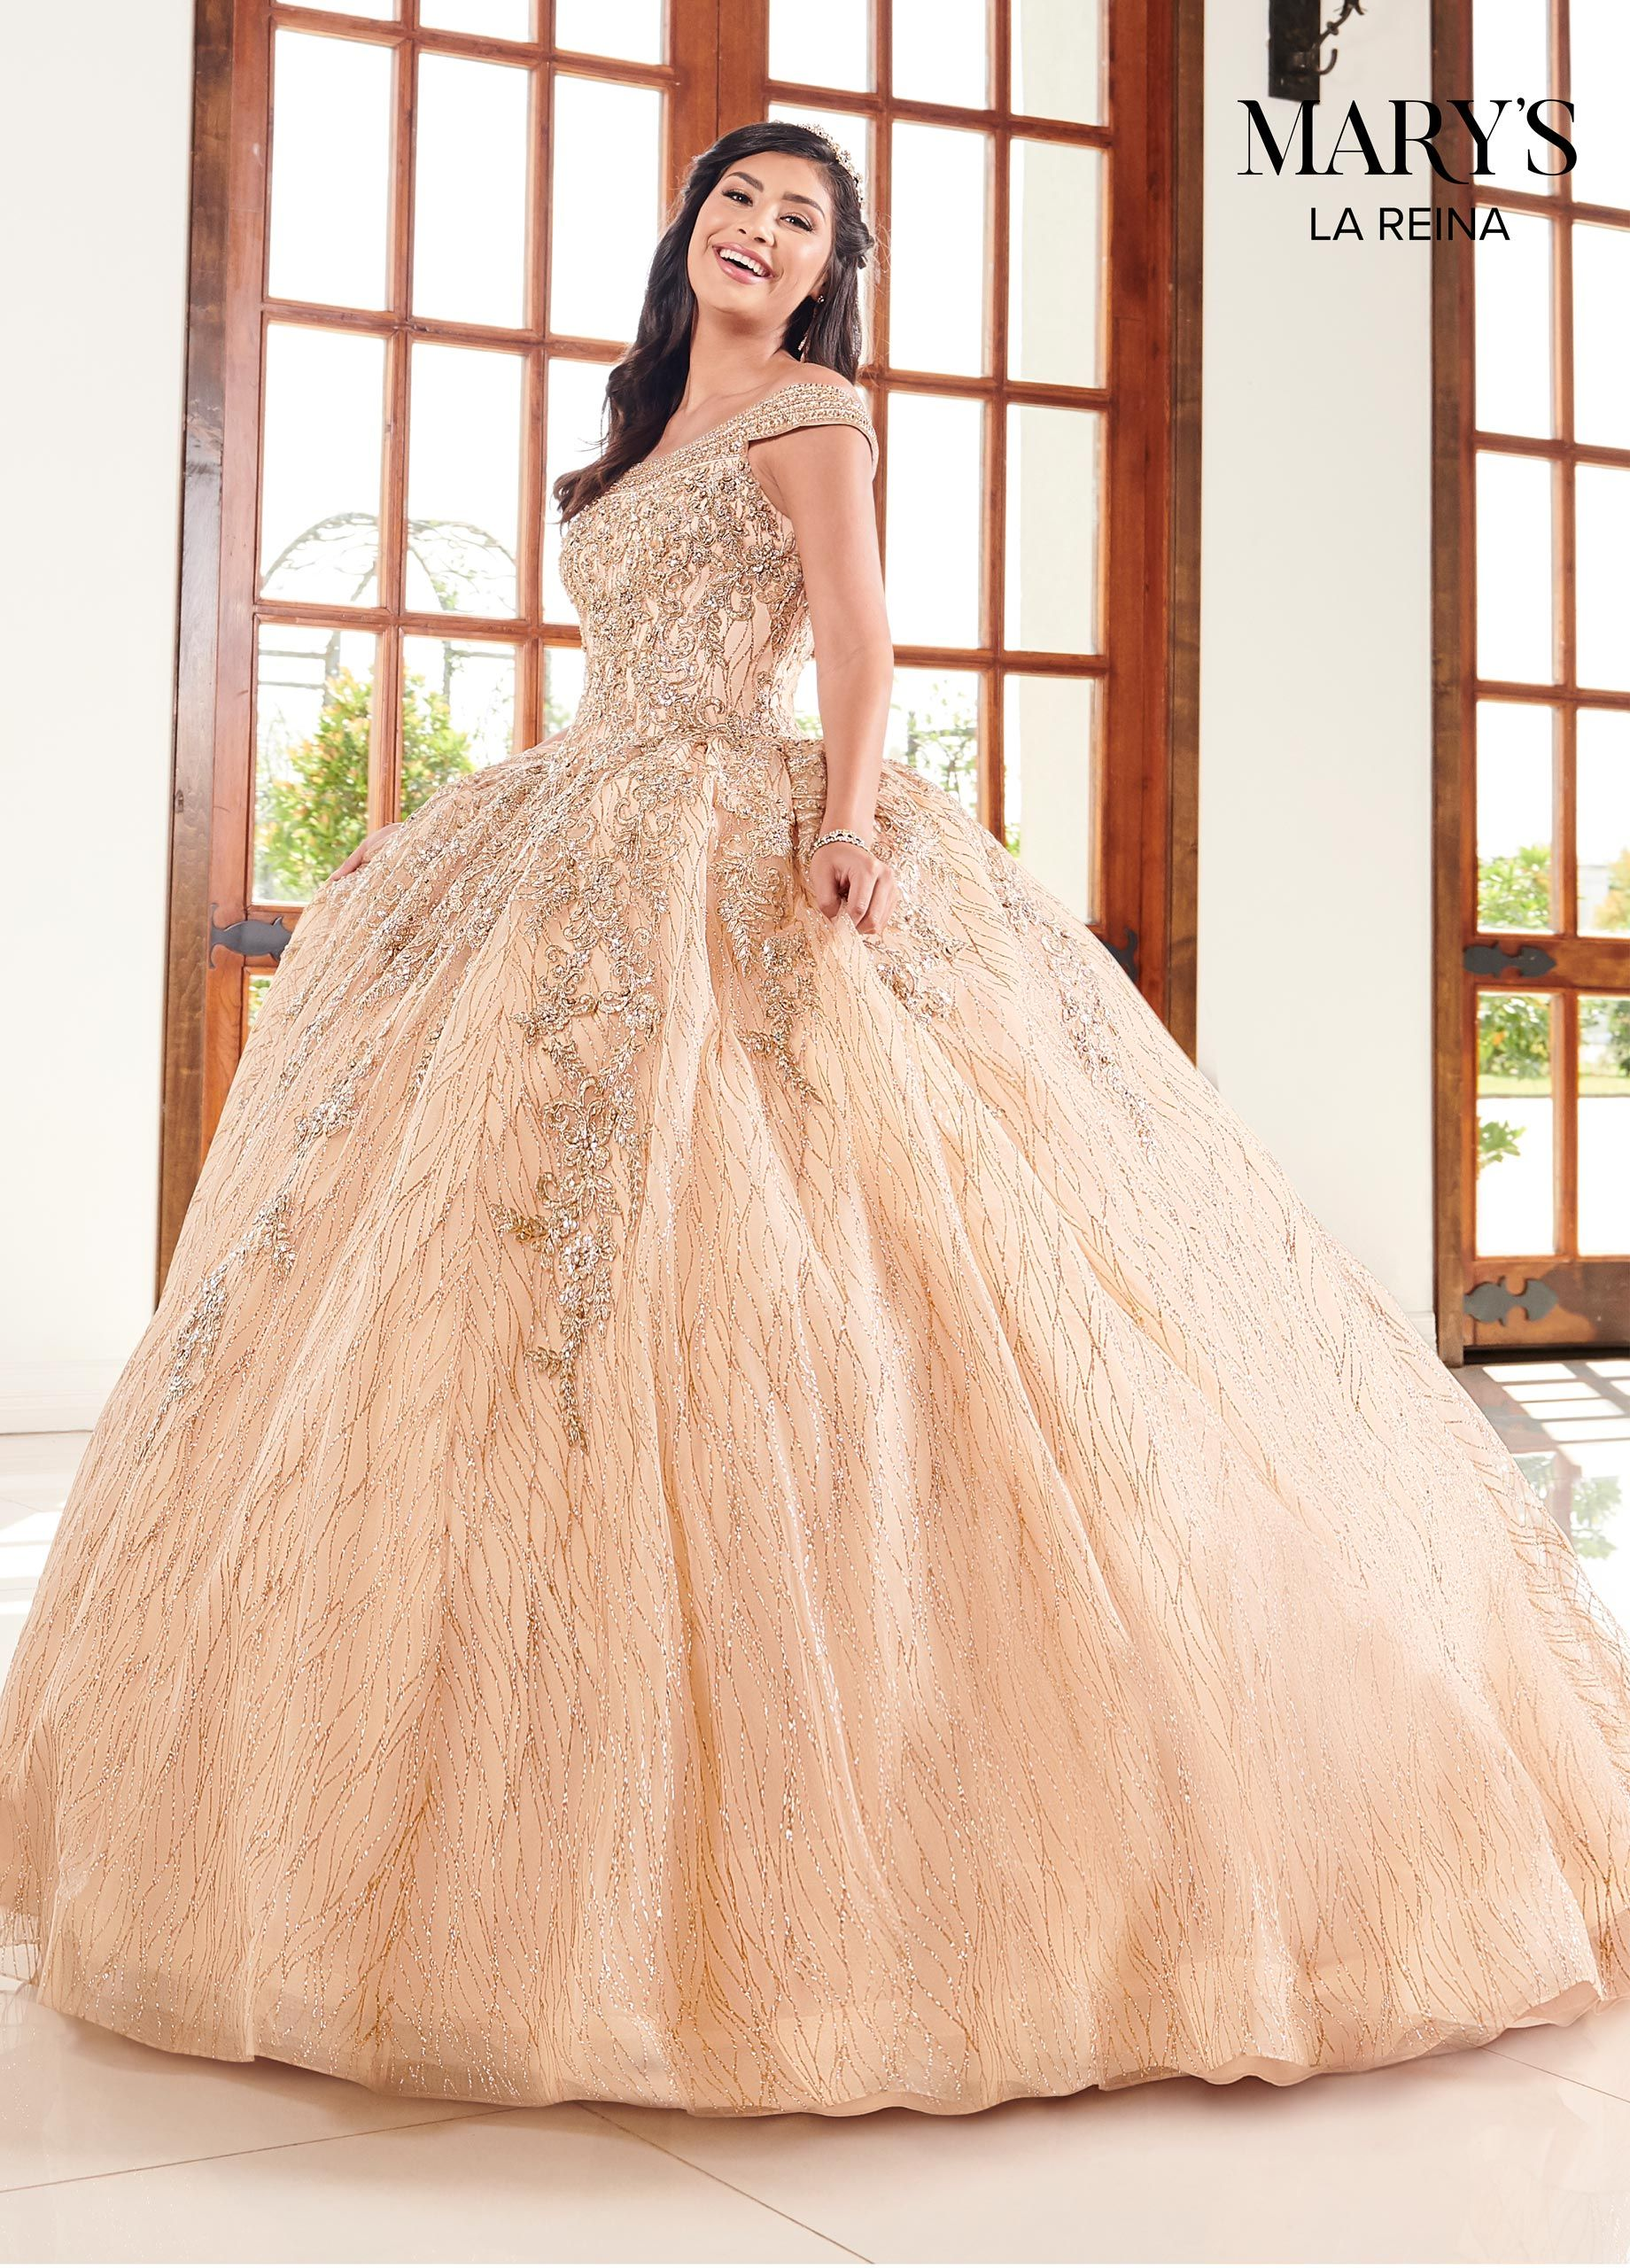 Glitter Off The Shoulder Quinceanera Dress Mary S Bridal Style Mq2095 Quinceanera Dresses Gold Quinceanera Dresses Ball Gowns [ 2560 x 1840 Pixel ]